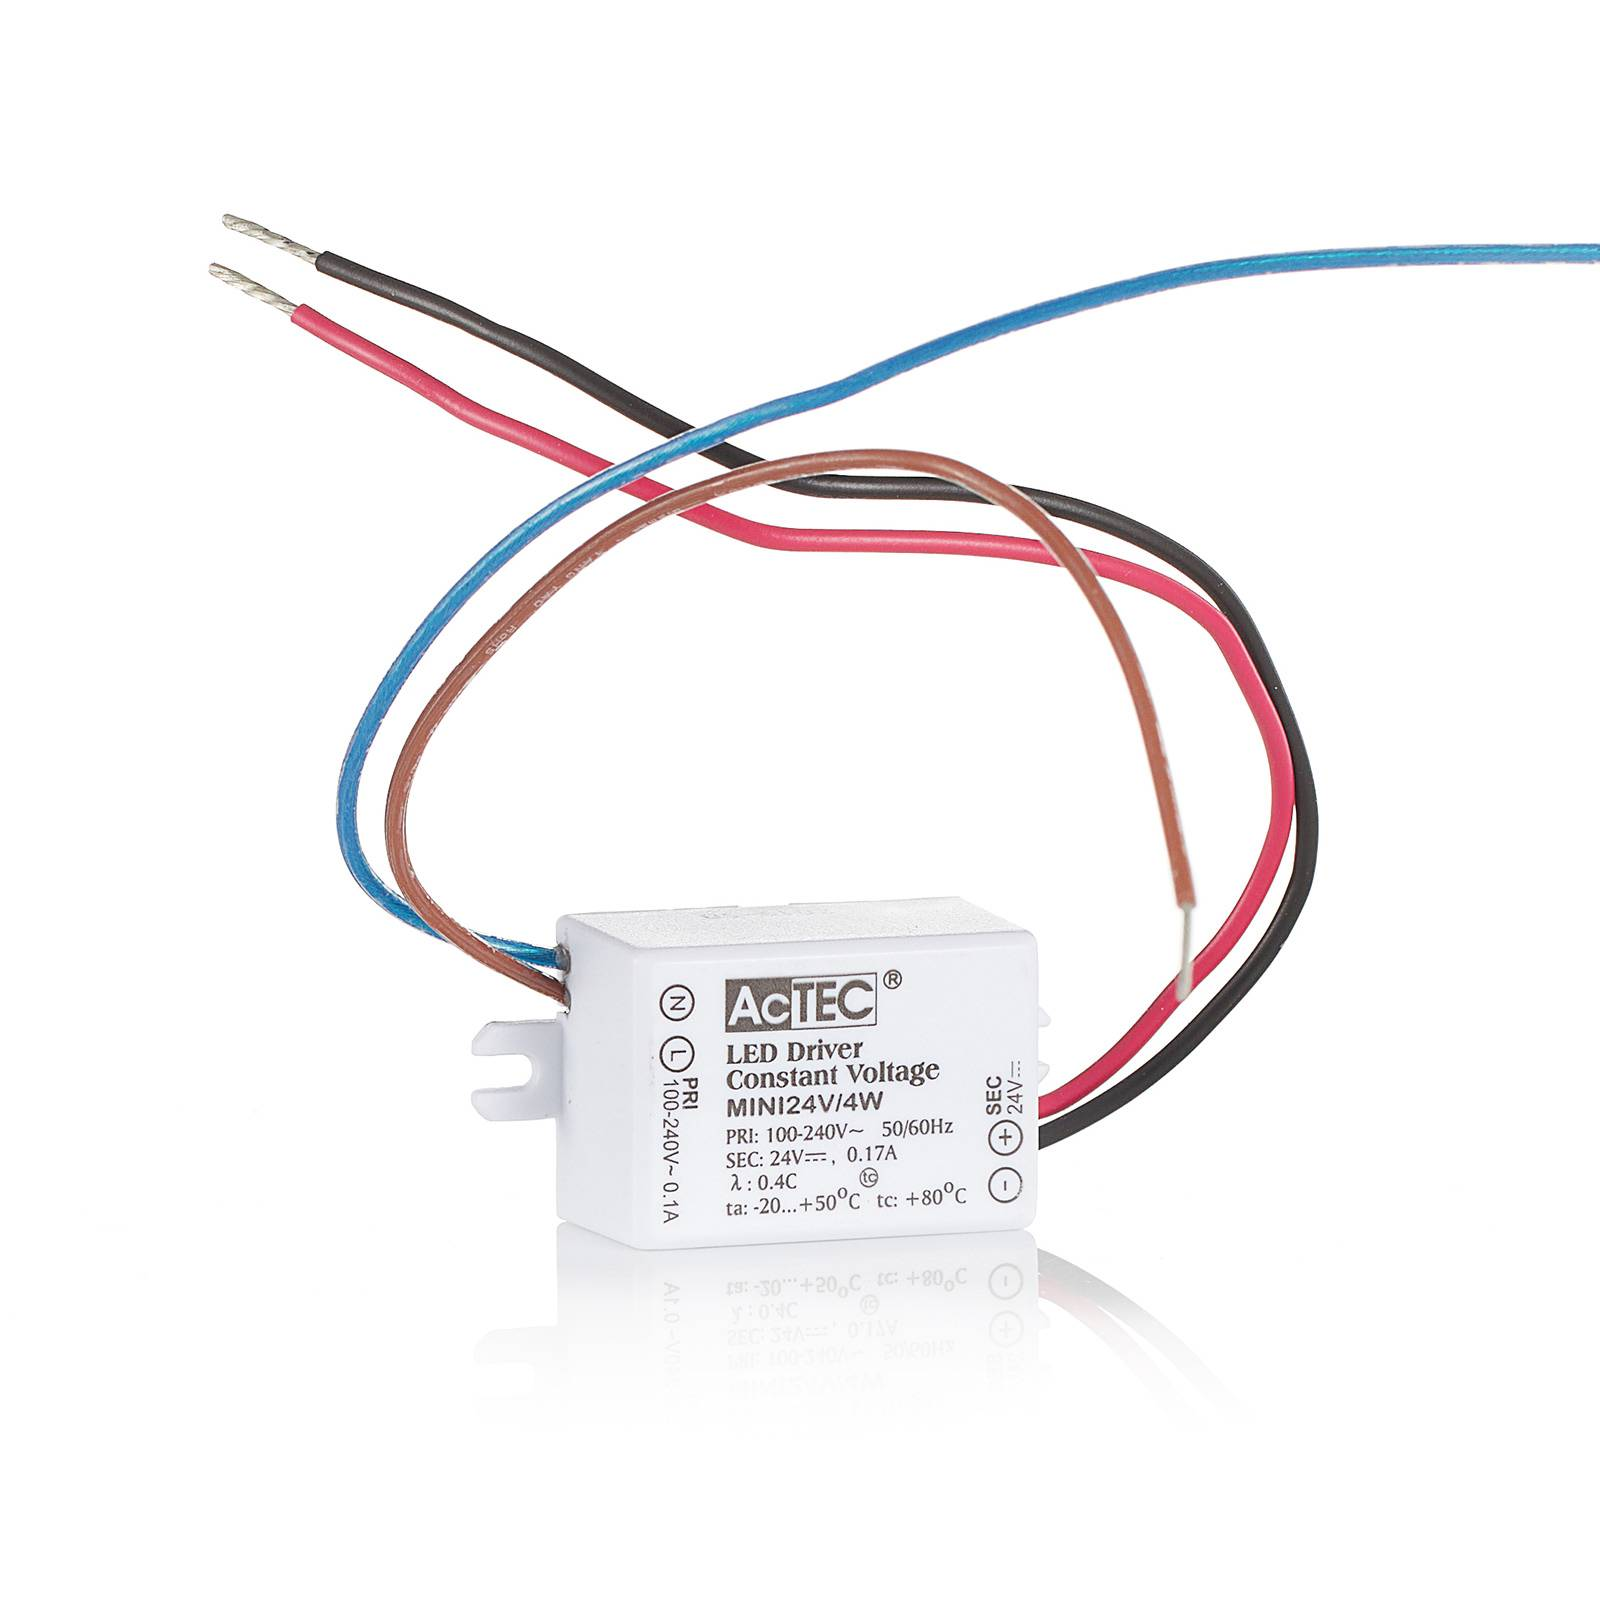 Bilde av Actec Mini Led-driver Cv 24 V, 4 W, Ip65